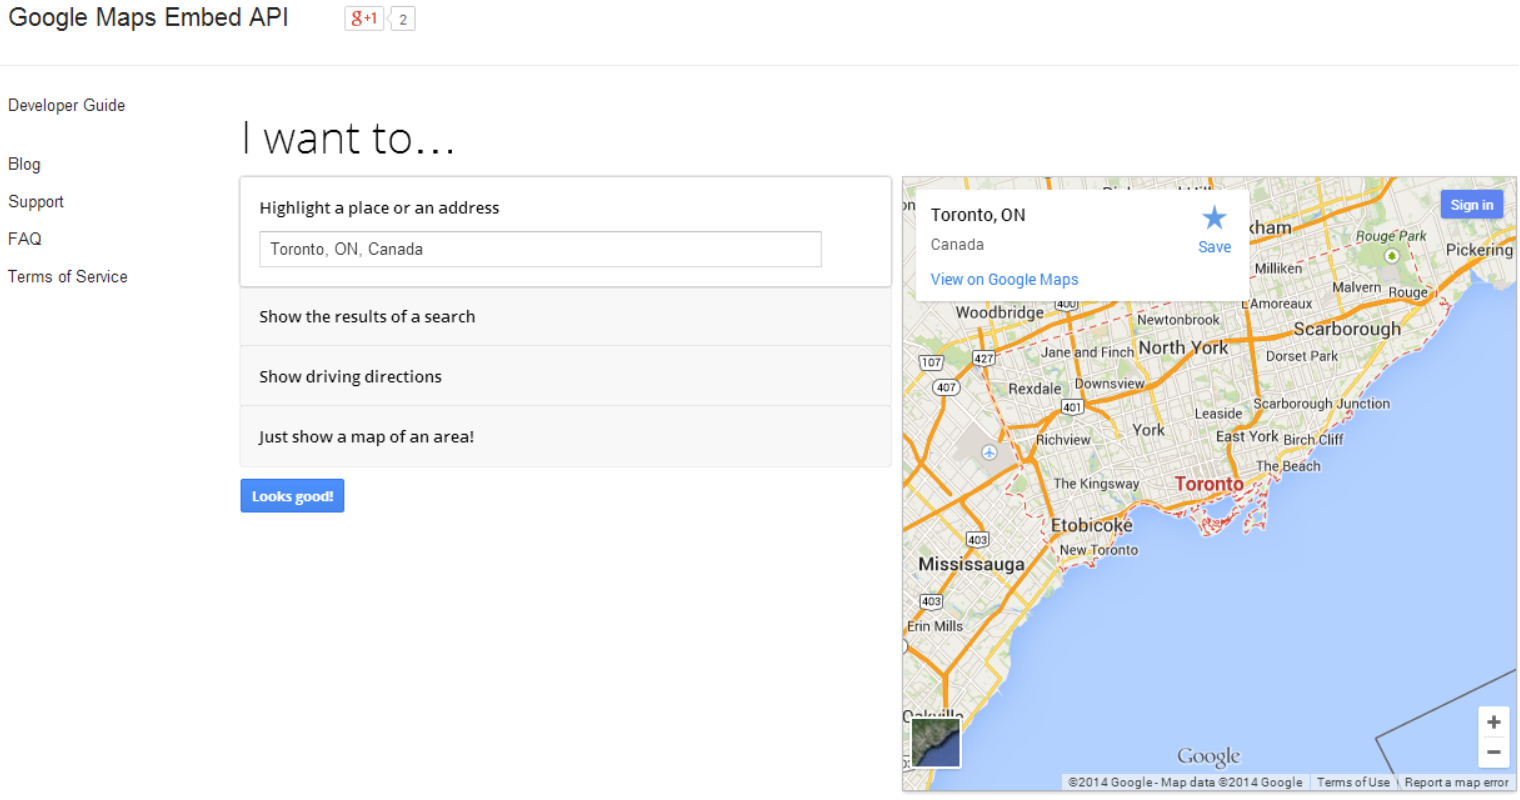 google maps embed api Google Maps Embed API lets developers generate HTML snippets for including maps in their own websites